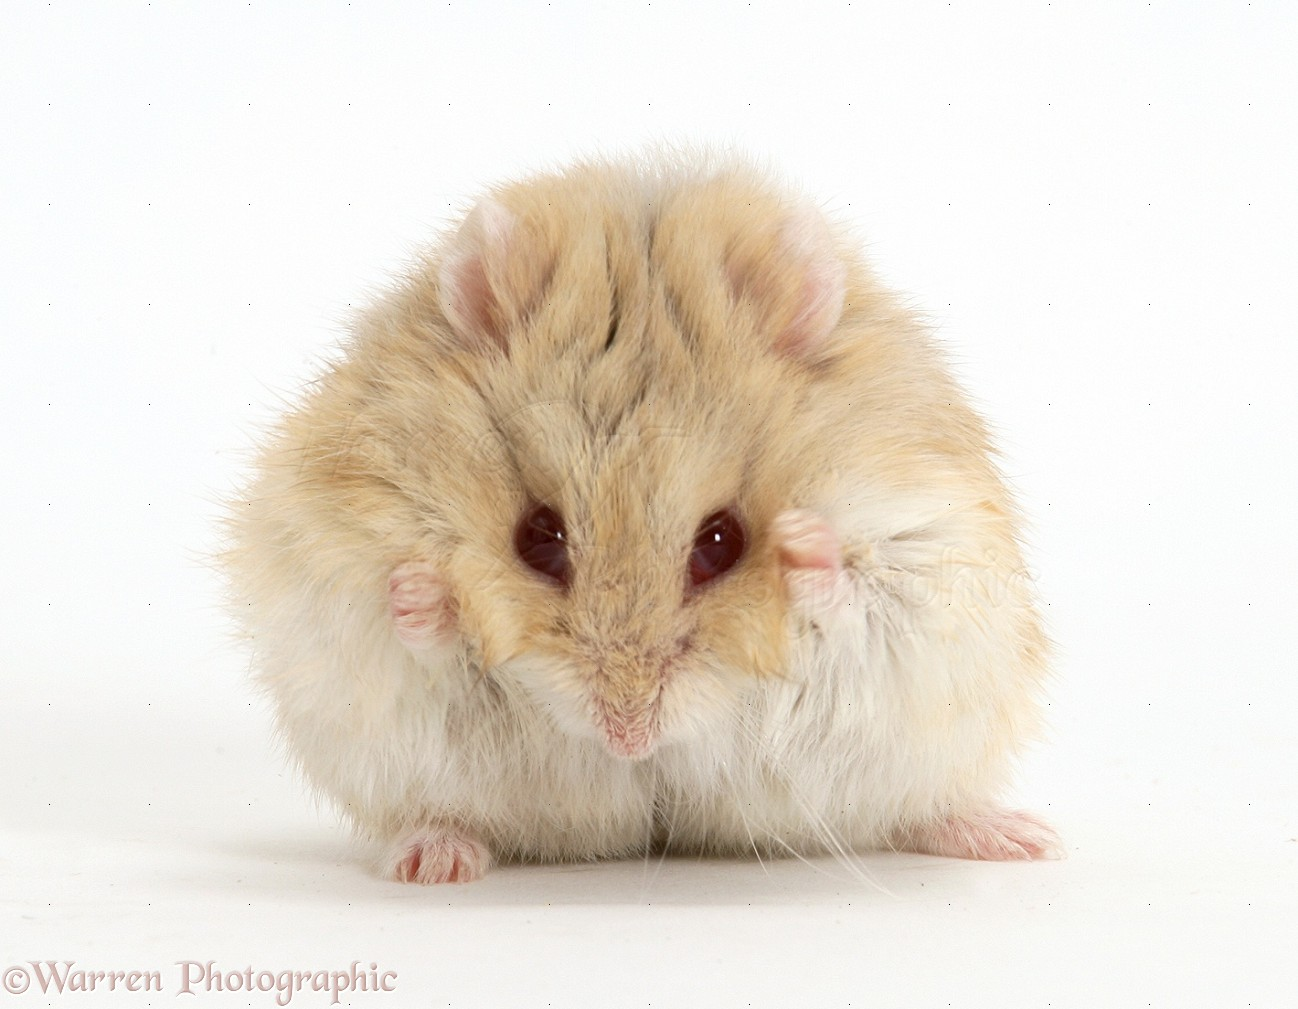 WP17275 Dwarf Russian Hamster ( Phodopus sungorus ) washing its face.